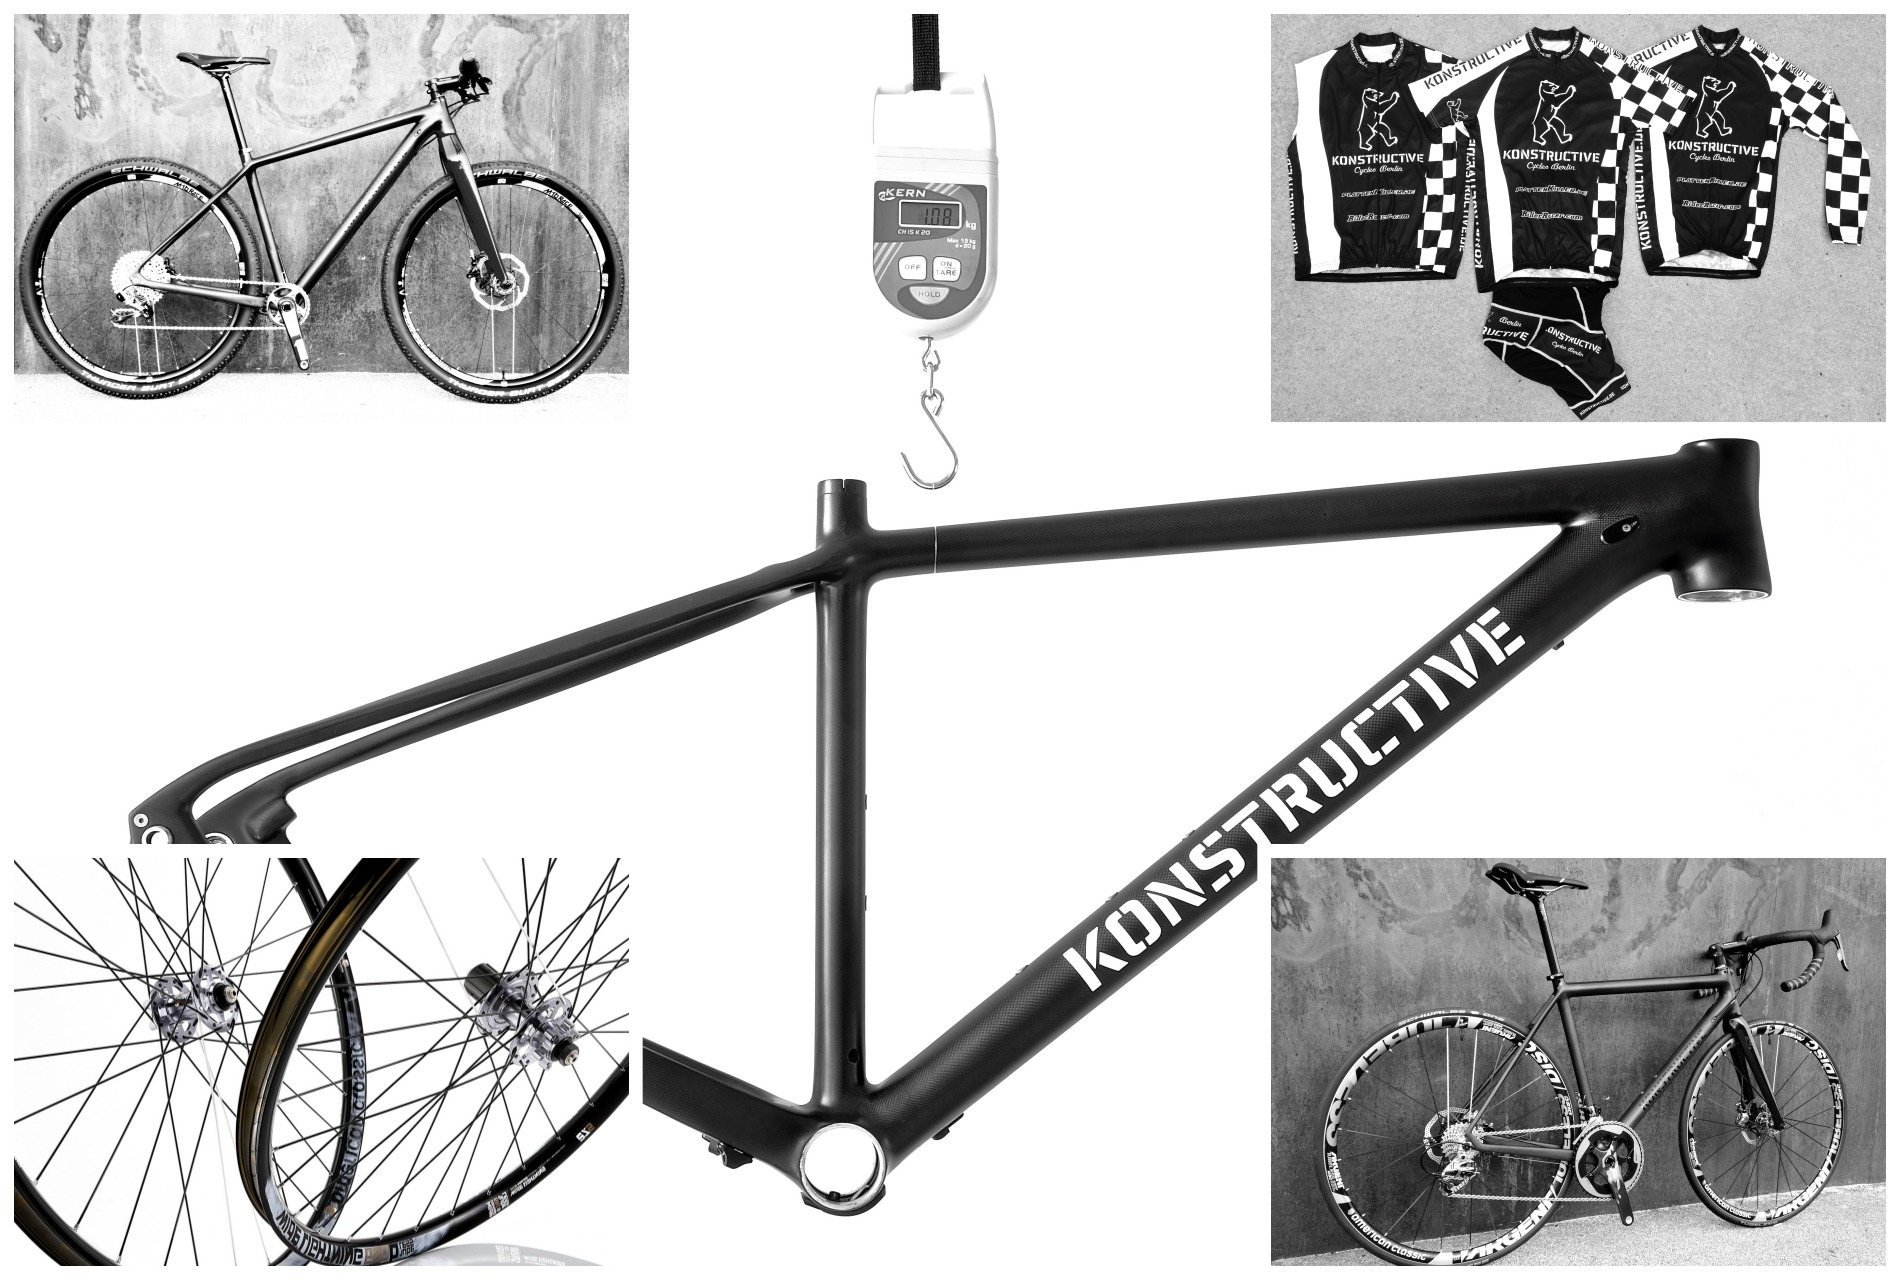 Konstructive Cycle Berlin Bikemanufaktur Montage des Dream Bikes